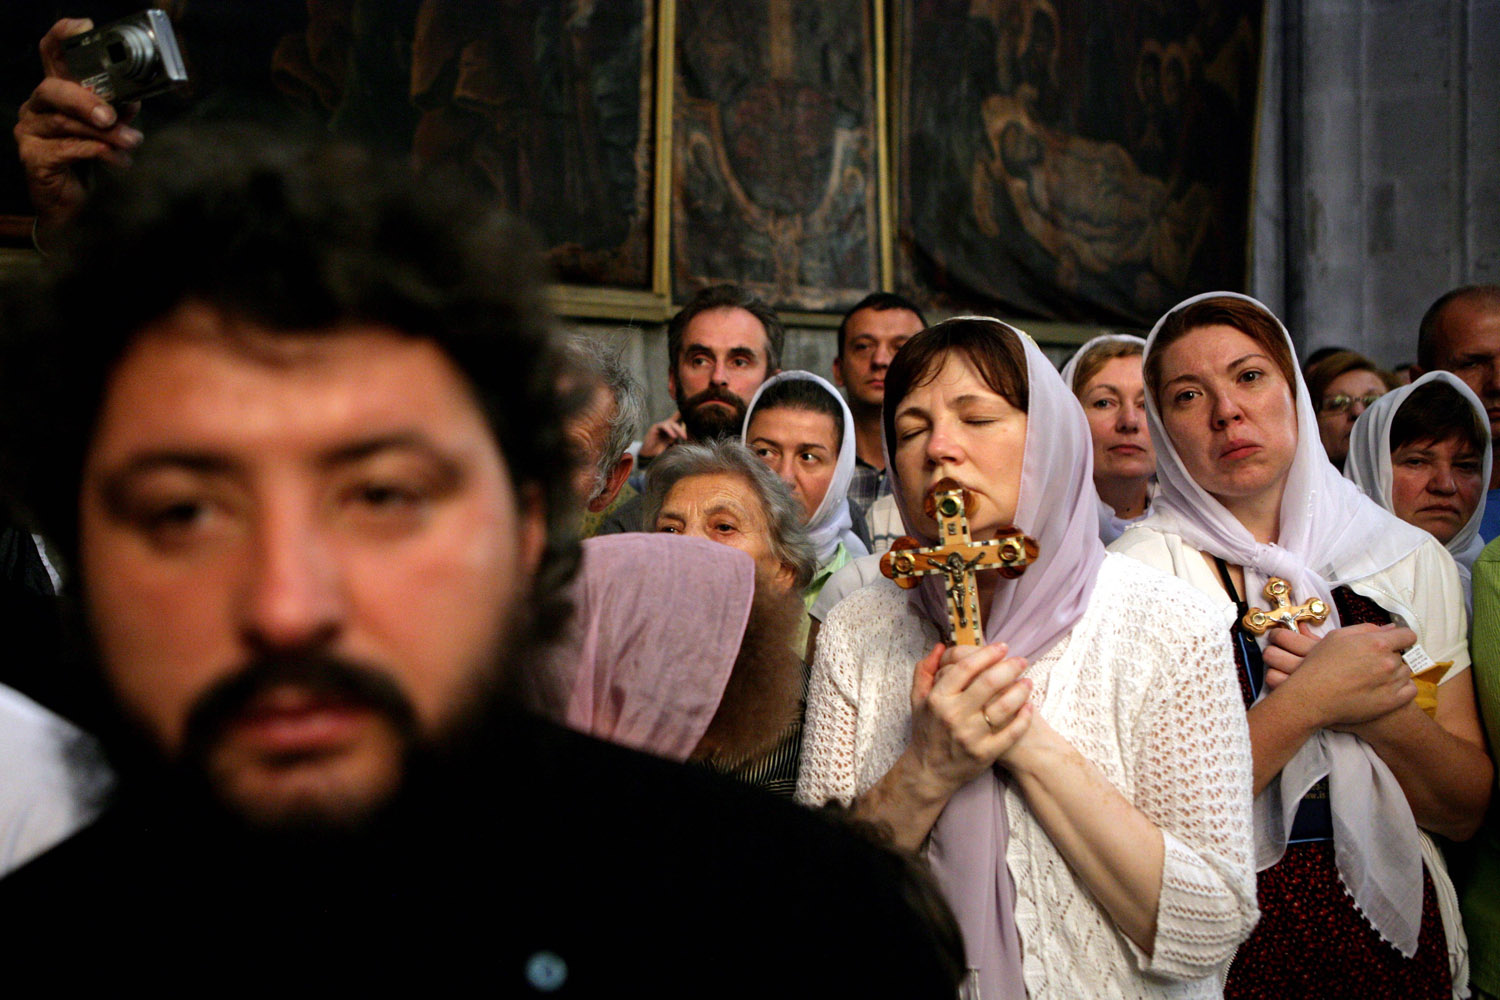 September 27, 2011. A Christian woman kisses a wooden cross during exaltation of the Holy Cross ceremony, the feasts of the Cross which commemorate the cross used in the crucifixion of Jesus, at the Church of the Holy Sepulchre in Jerusalem, Israel.